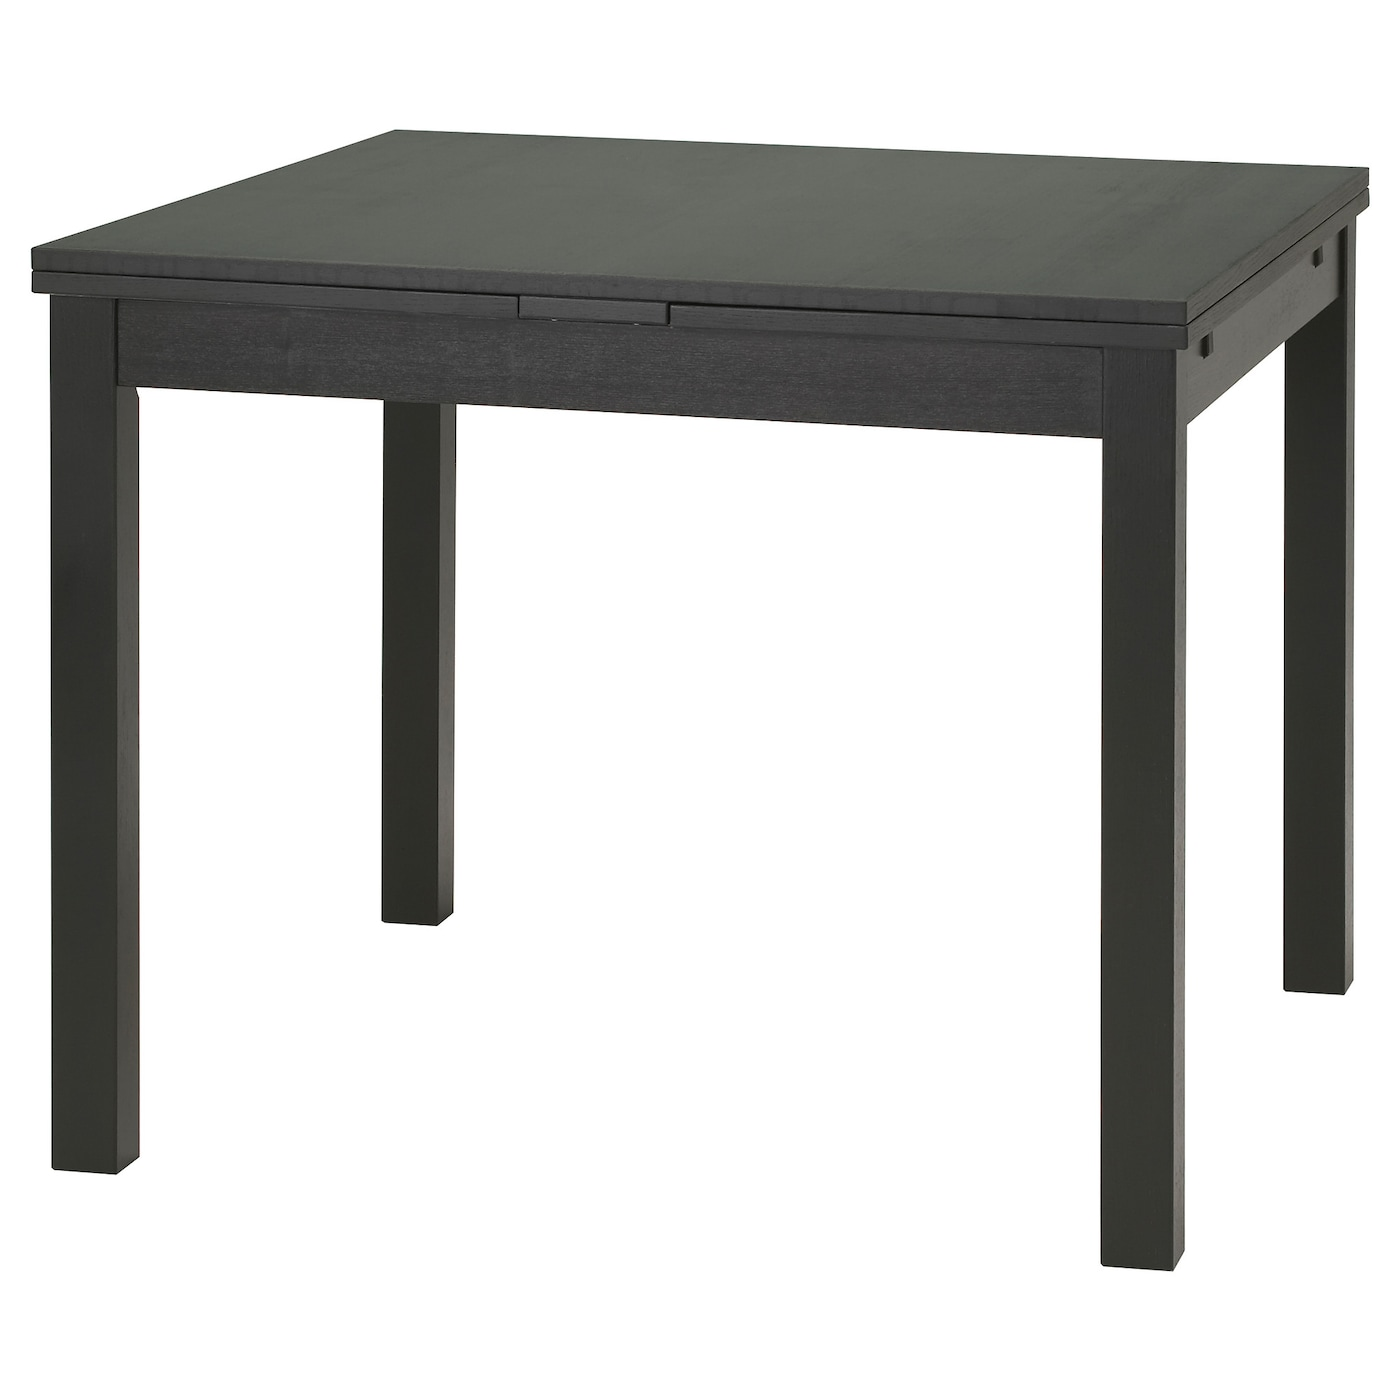 BJURSTA Extendable table Brown black 90129168x90 cm IKEA : bjursta extendable table brown black73928pe190703s5 from www.ikea.com size 2000 x 2000 jpeg 203kB